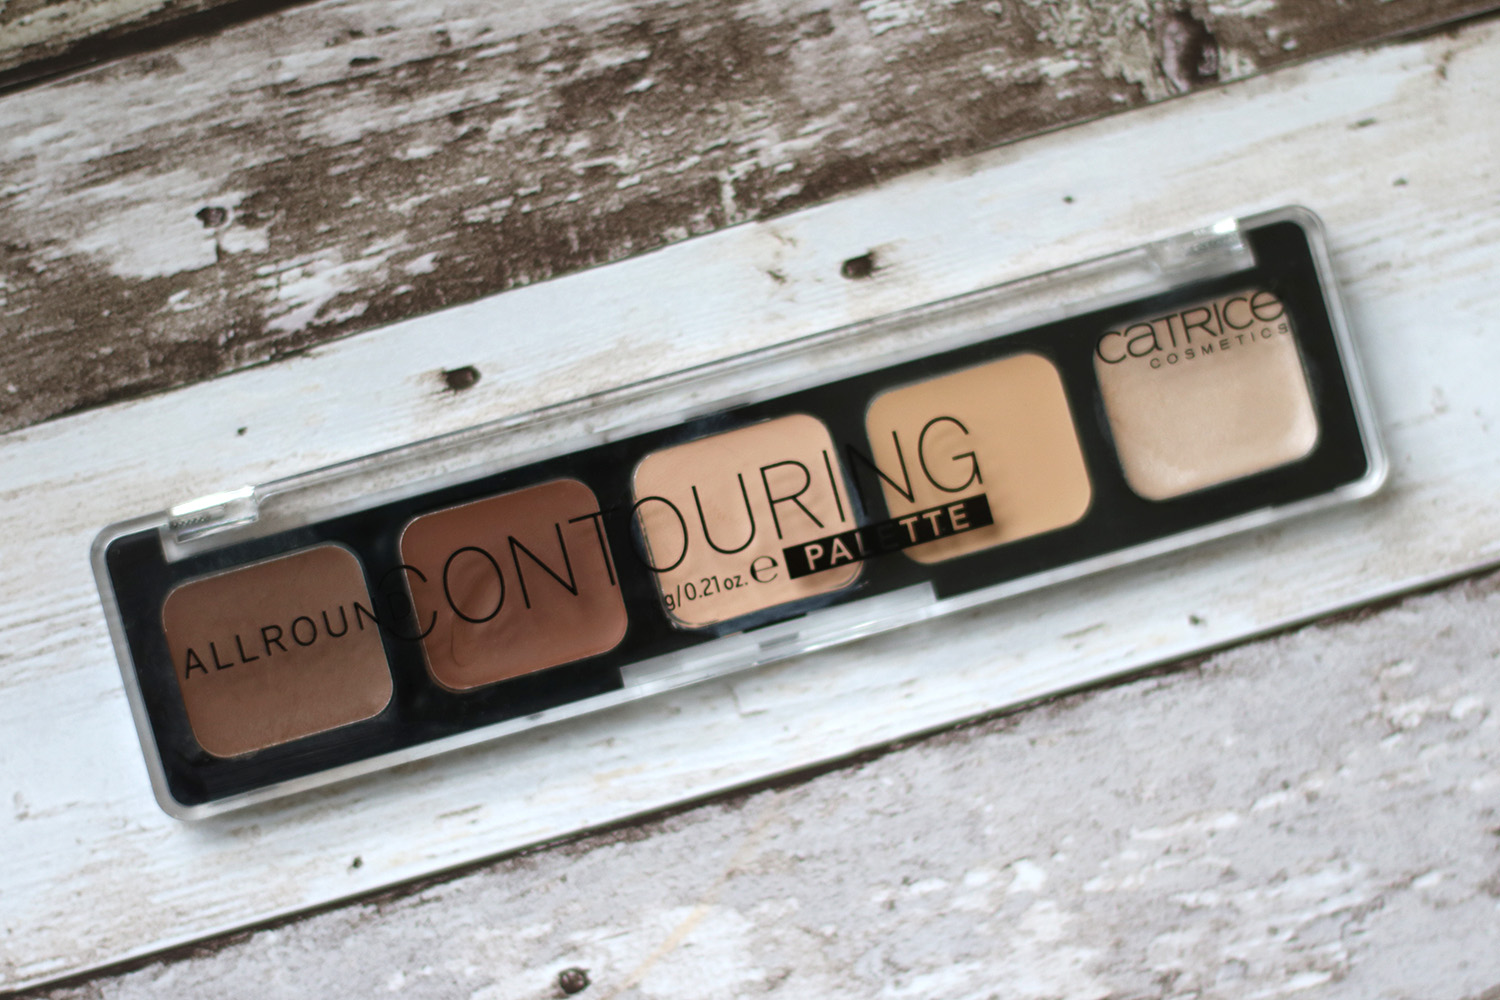 Produkt, CATRICE, Conturing Tipps, Kontur setzten, Kontur, CATRICE ALLROUND Contouring Palette, Review, Test, Swatch, Tagesmakeup, Alltagsmakeup, helle Haut, rote Haare, Makeup Tutorial, Monday's Makeup, Beautytipps, Beauty Blog, Berlin, Influencer, Advance Your Style, advanceyourstyle